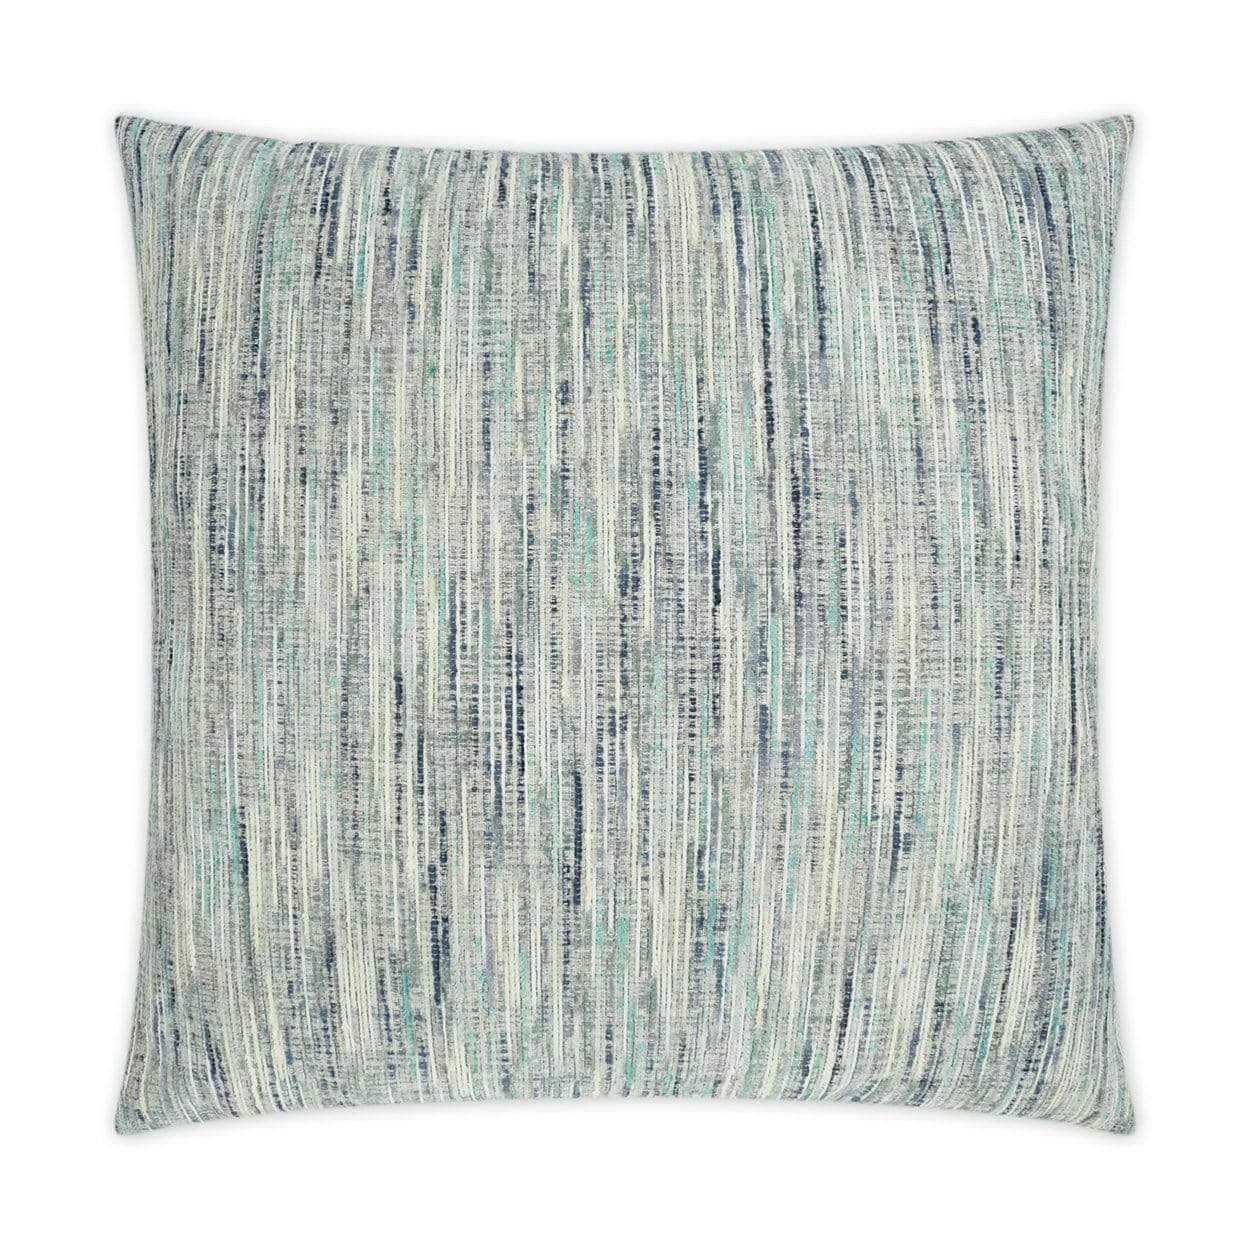 D.V. Kap D.V. Kap Sultan Pillow - Available in 2 Colors Lagoon 3407-L